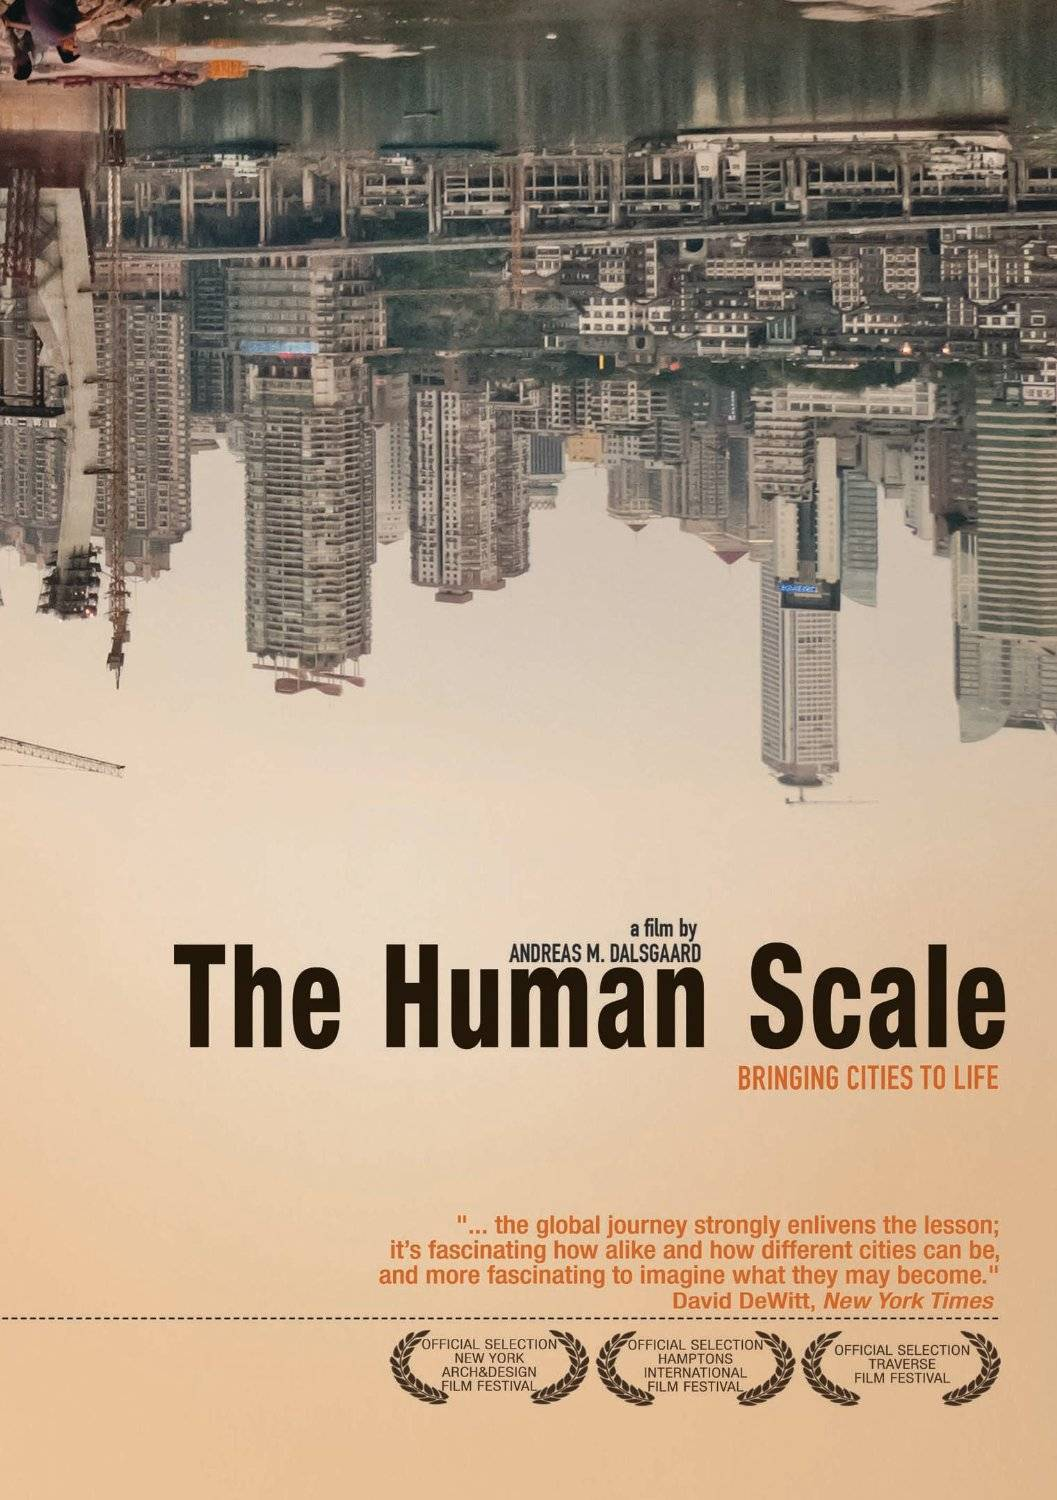 The Human Scale promo photo